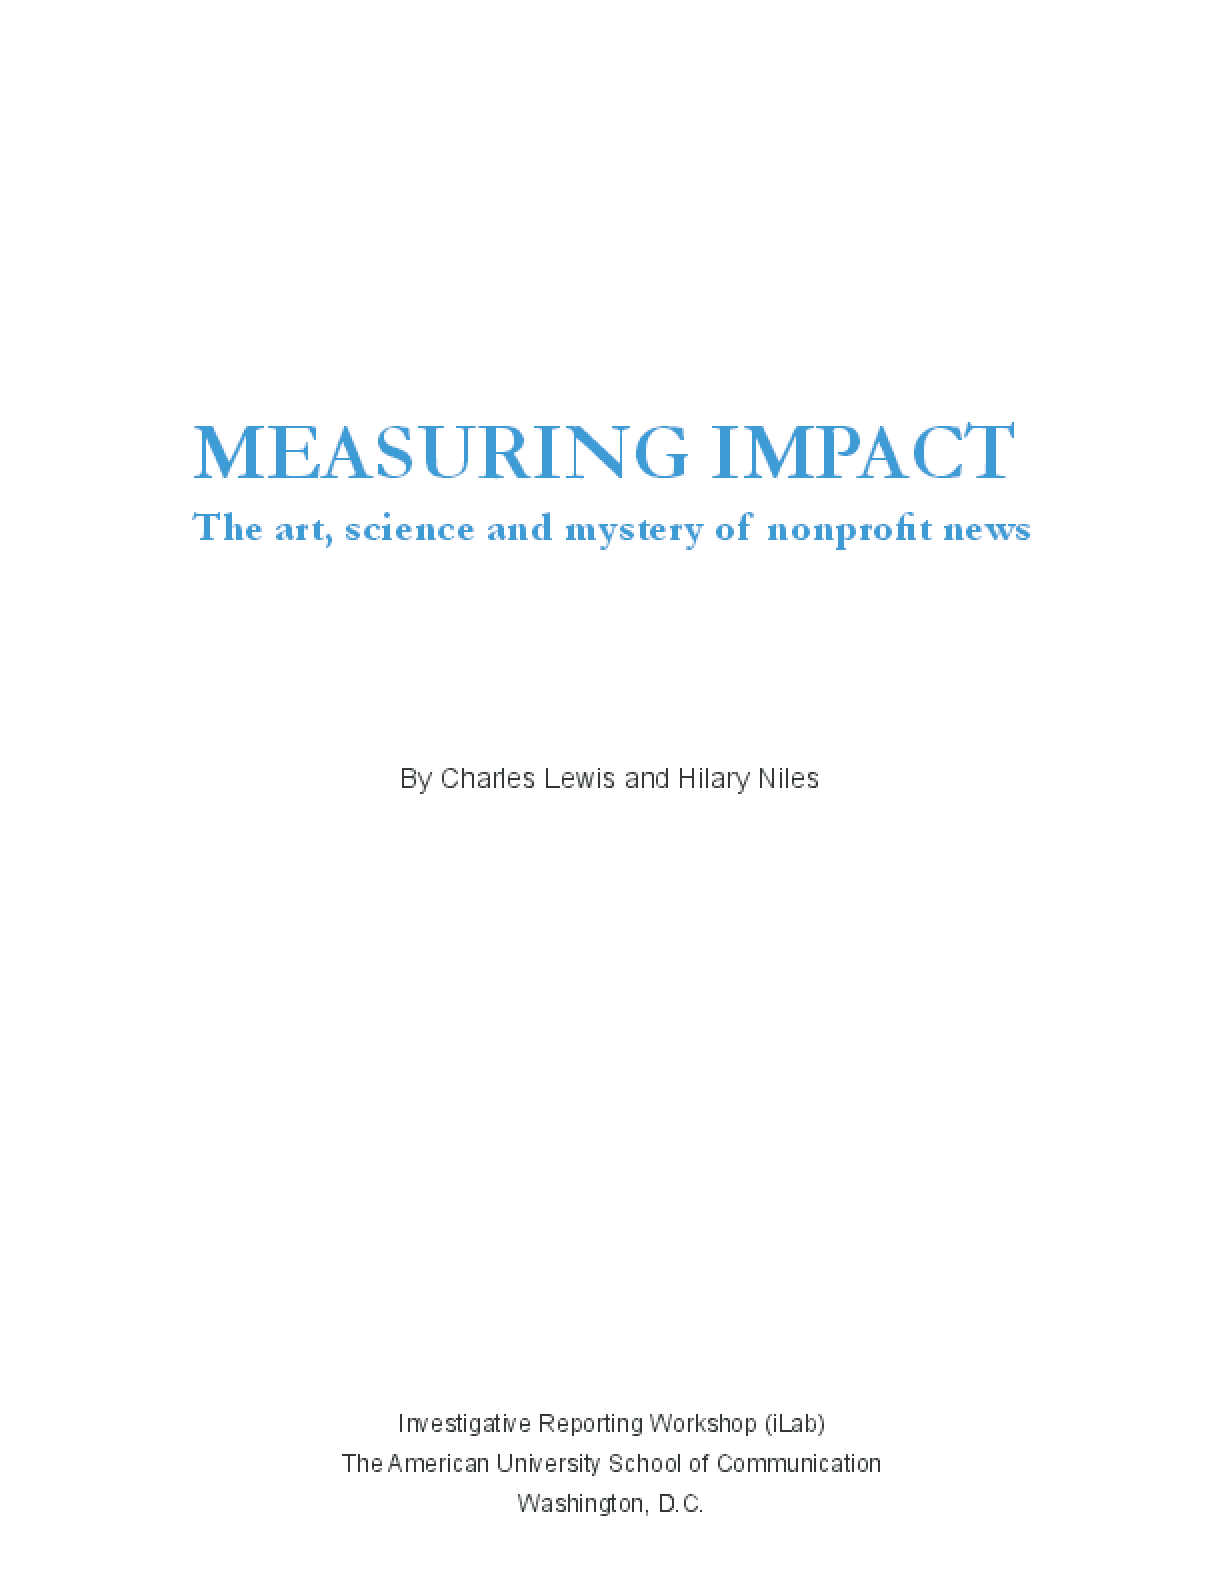 Measuring Impact: The Art, Science and Mystery of Nonprofit News